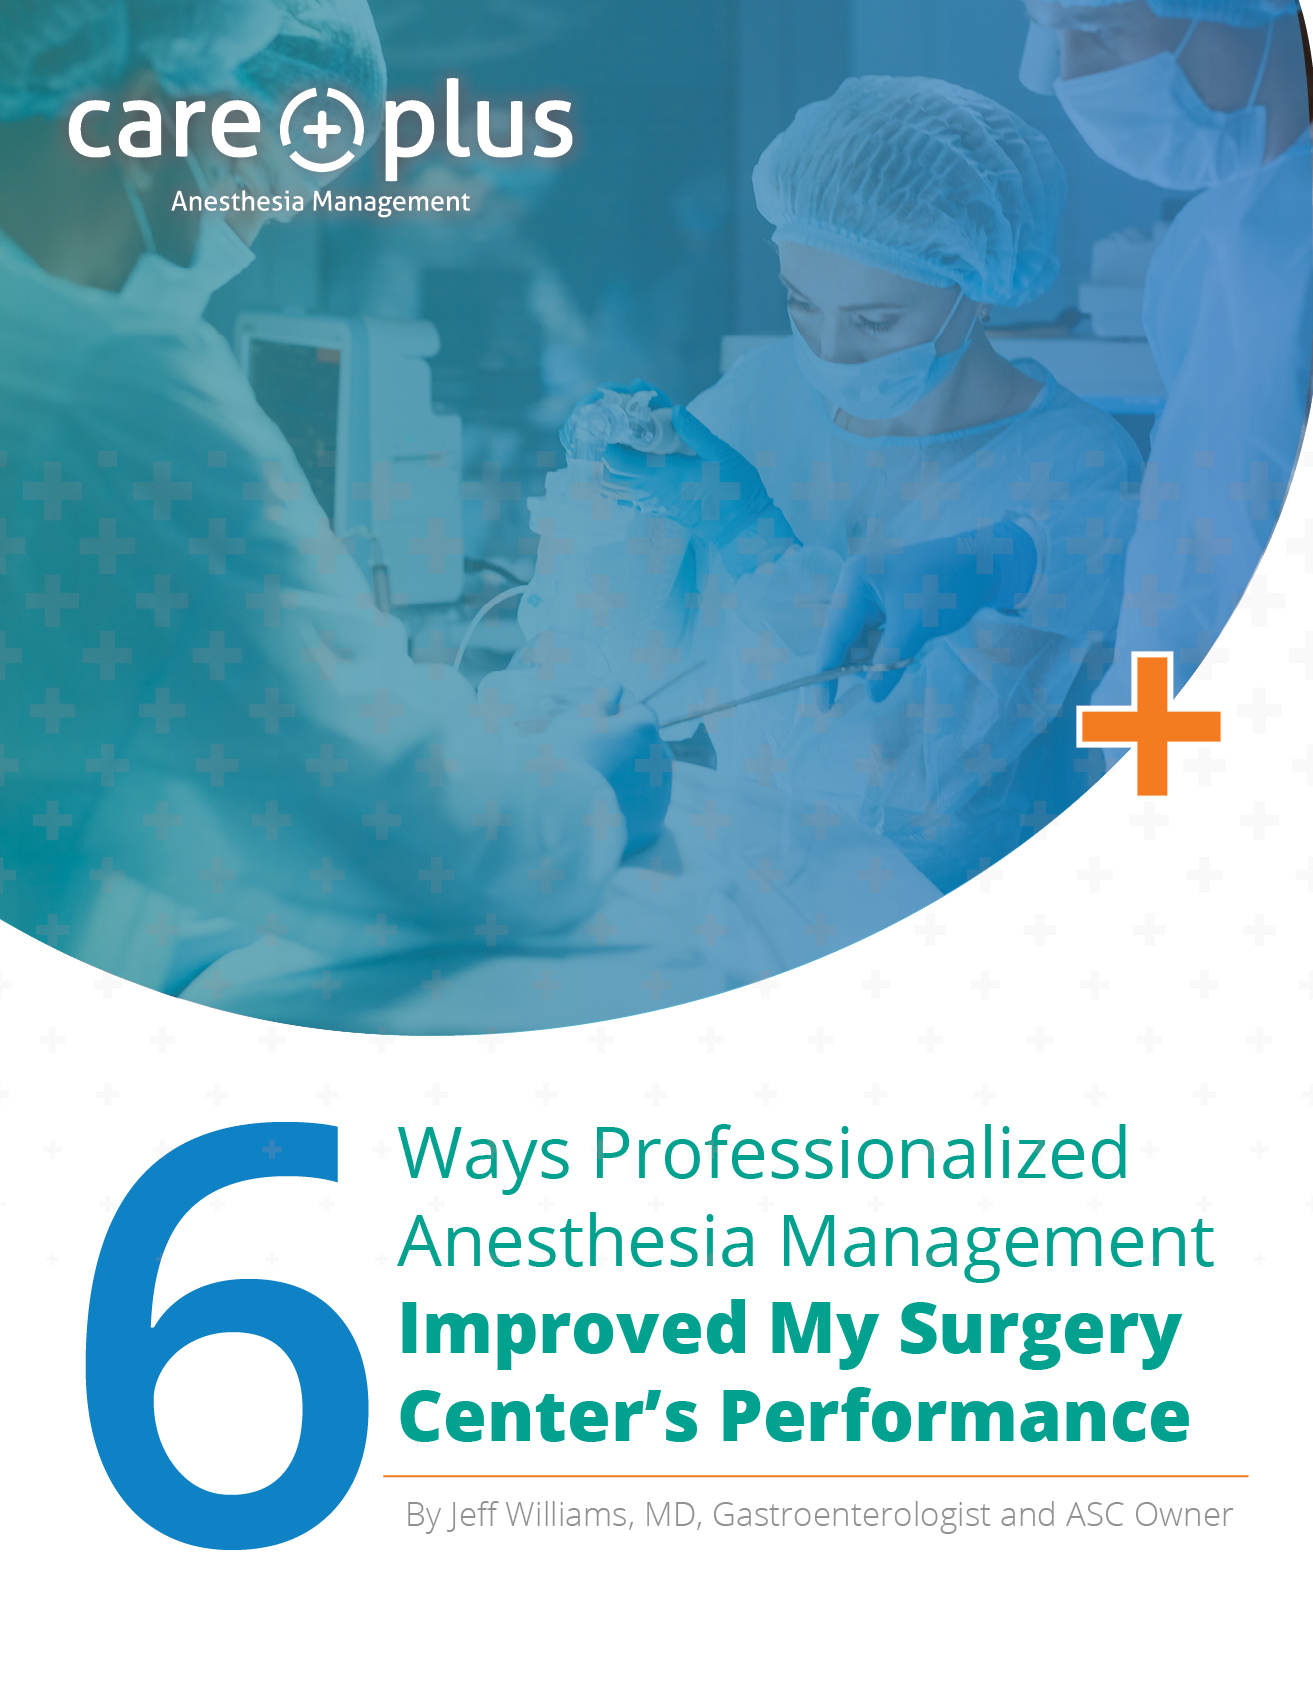 6 Ways Professionalized Anesthesia Management Improved My Surgery Center's Performance